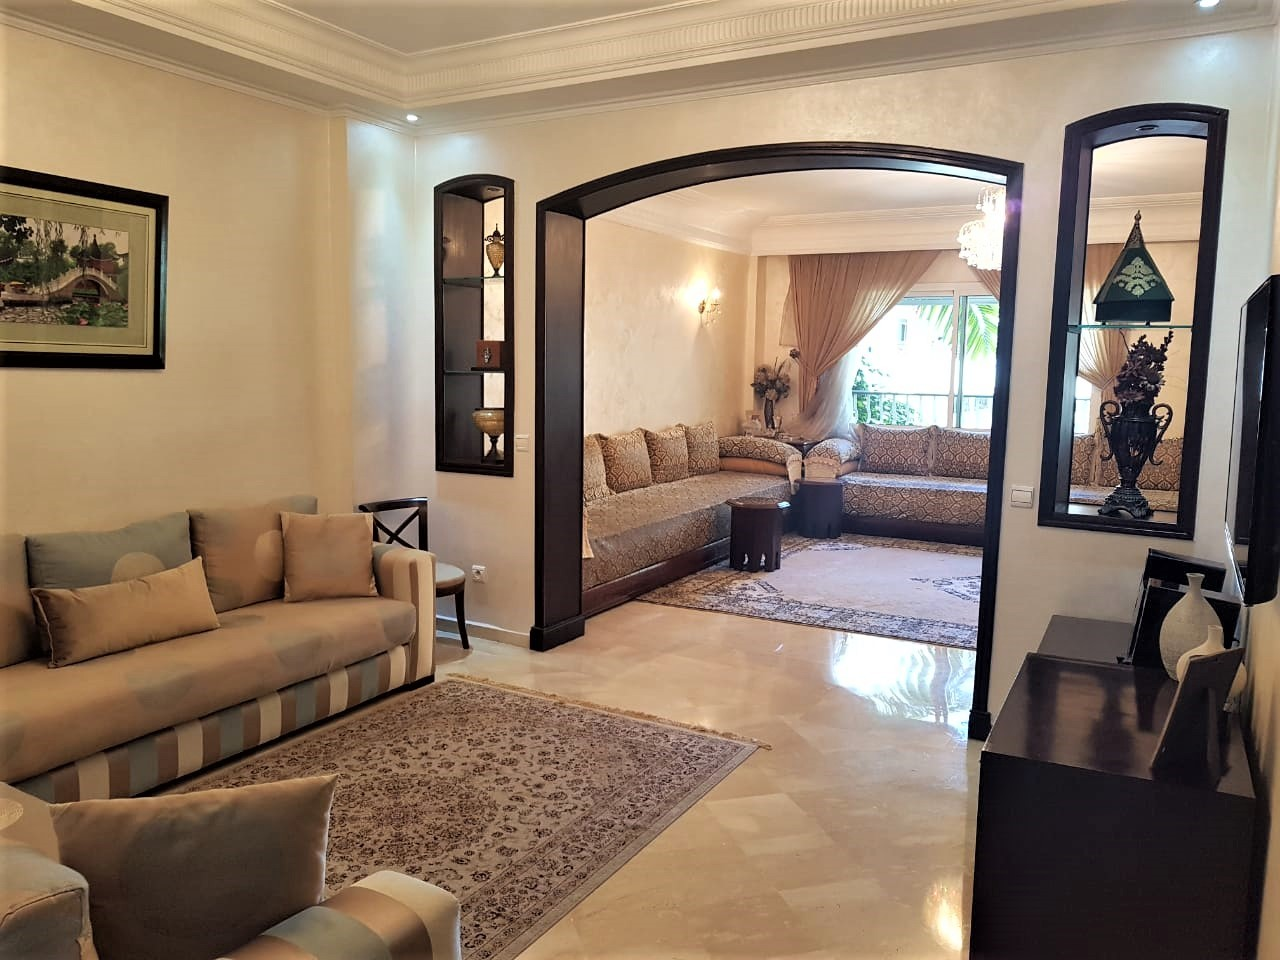 Vente <strong>Appartement</strong> Casablanca Maarif <strong>105 m2</strong>